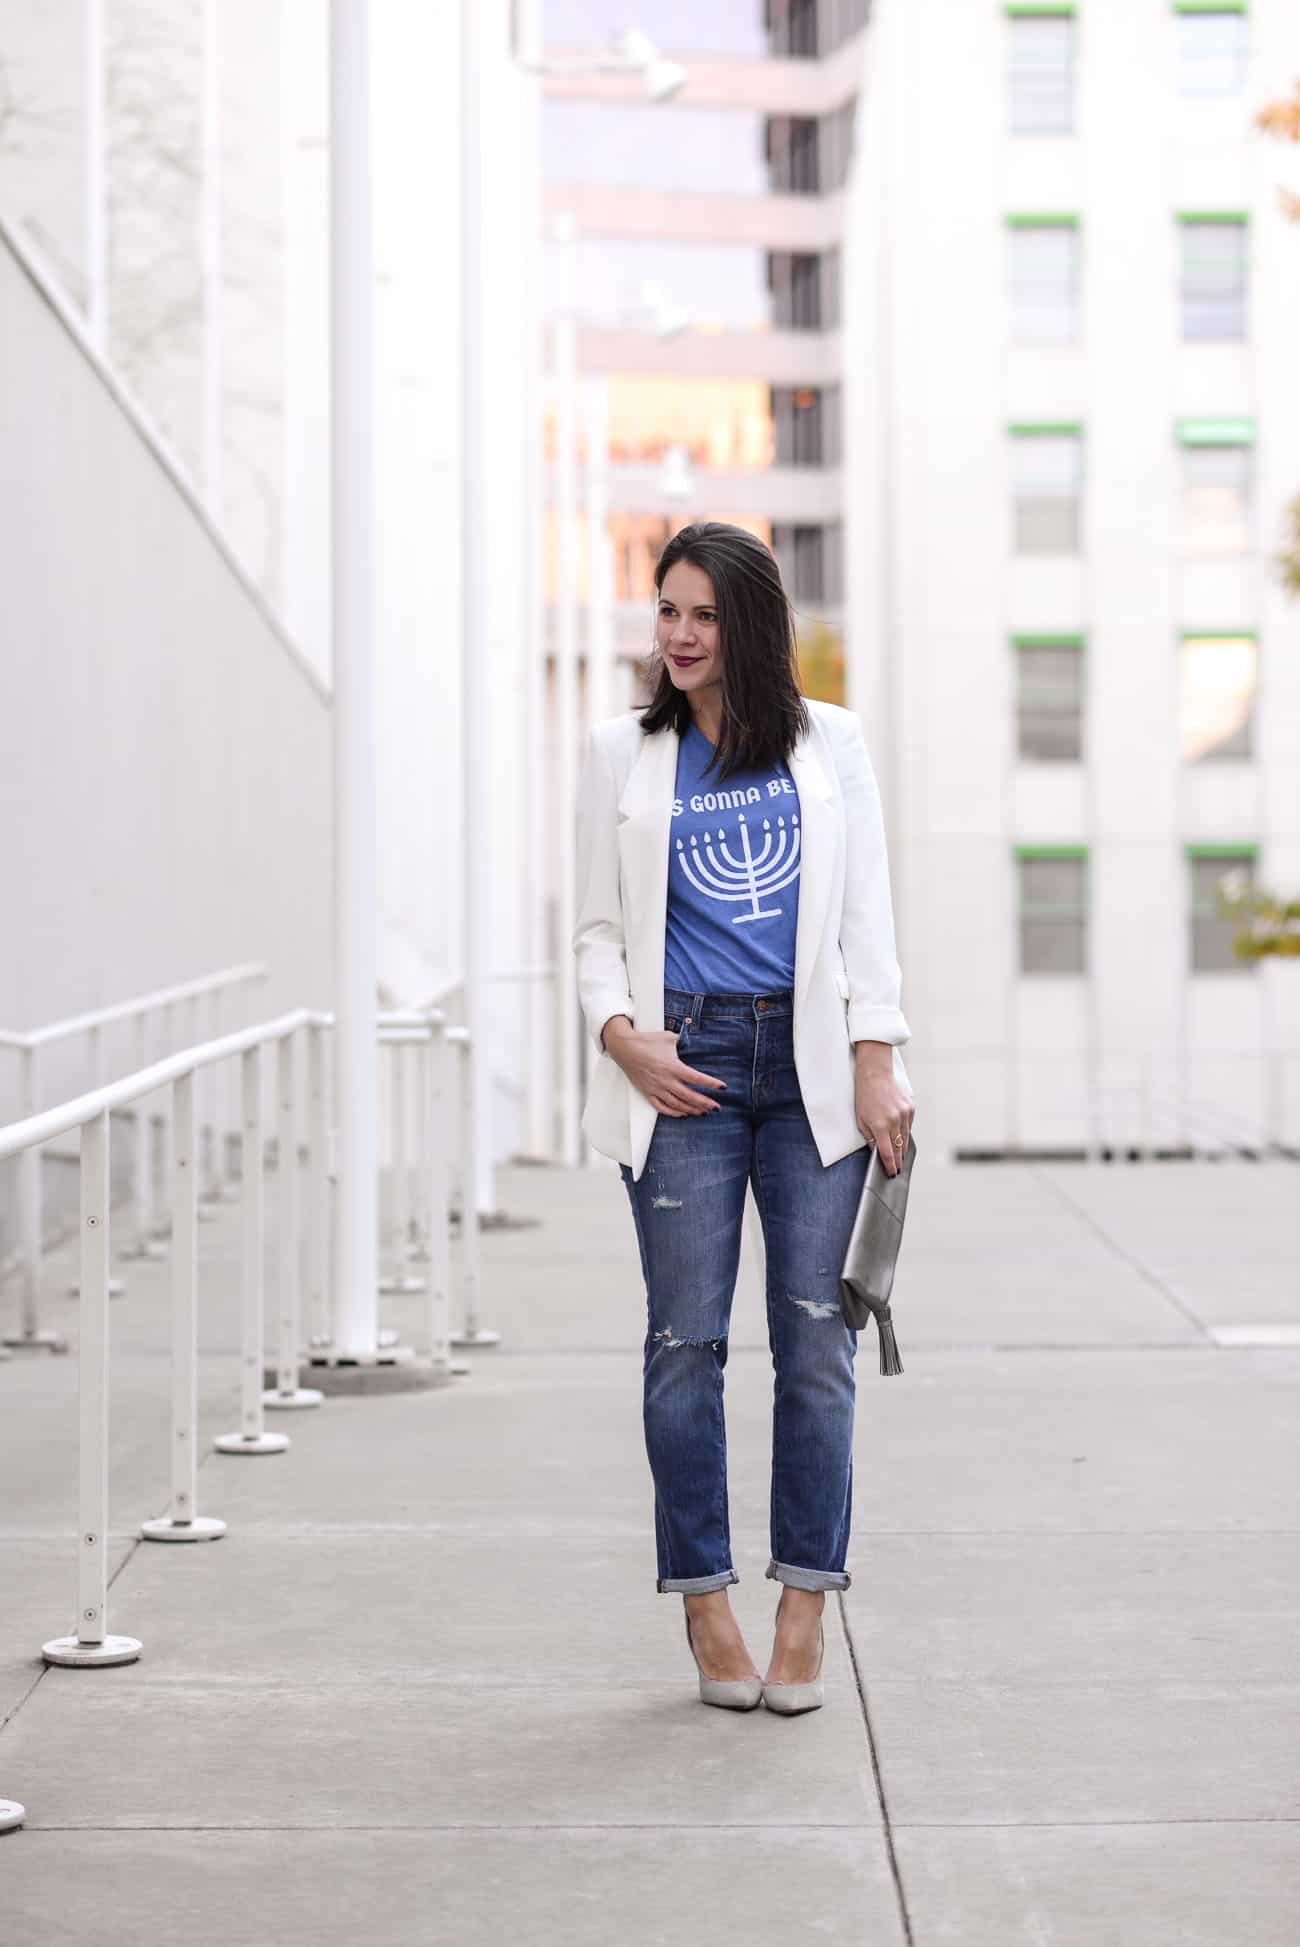 Hanukah T Shirt, Hanukah Party Outfit Ideas - My Style Vita @mystylevita